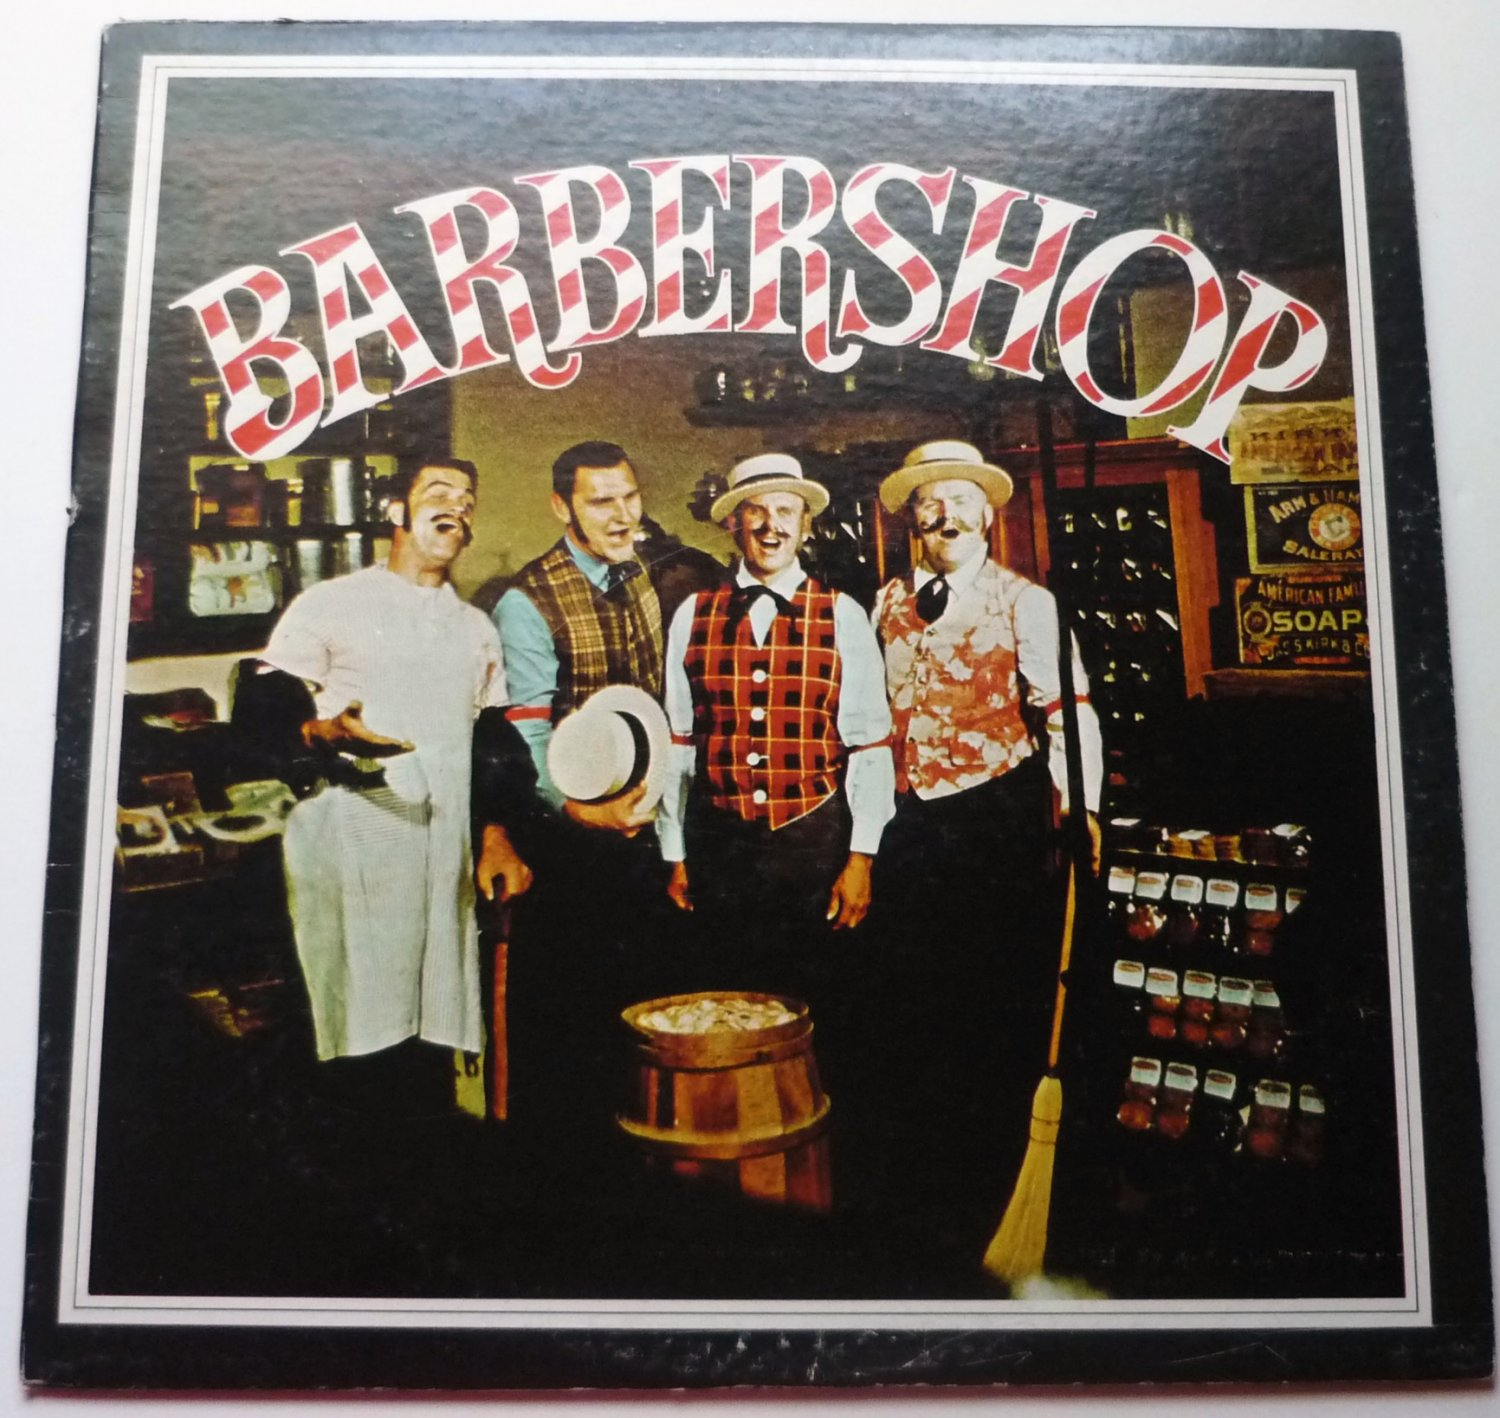 Barbershop lp the Extension Chords